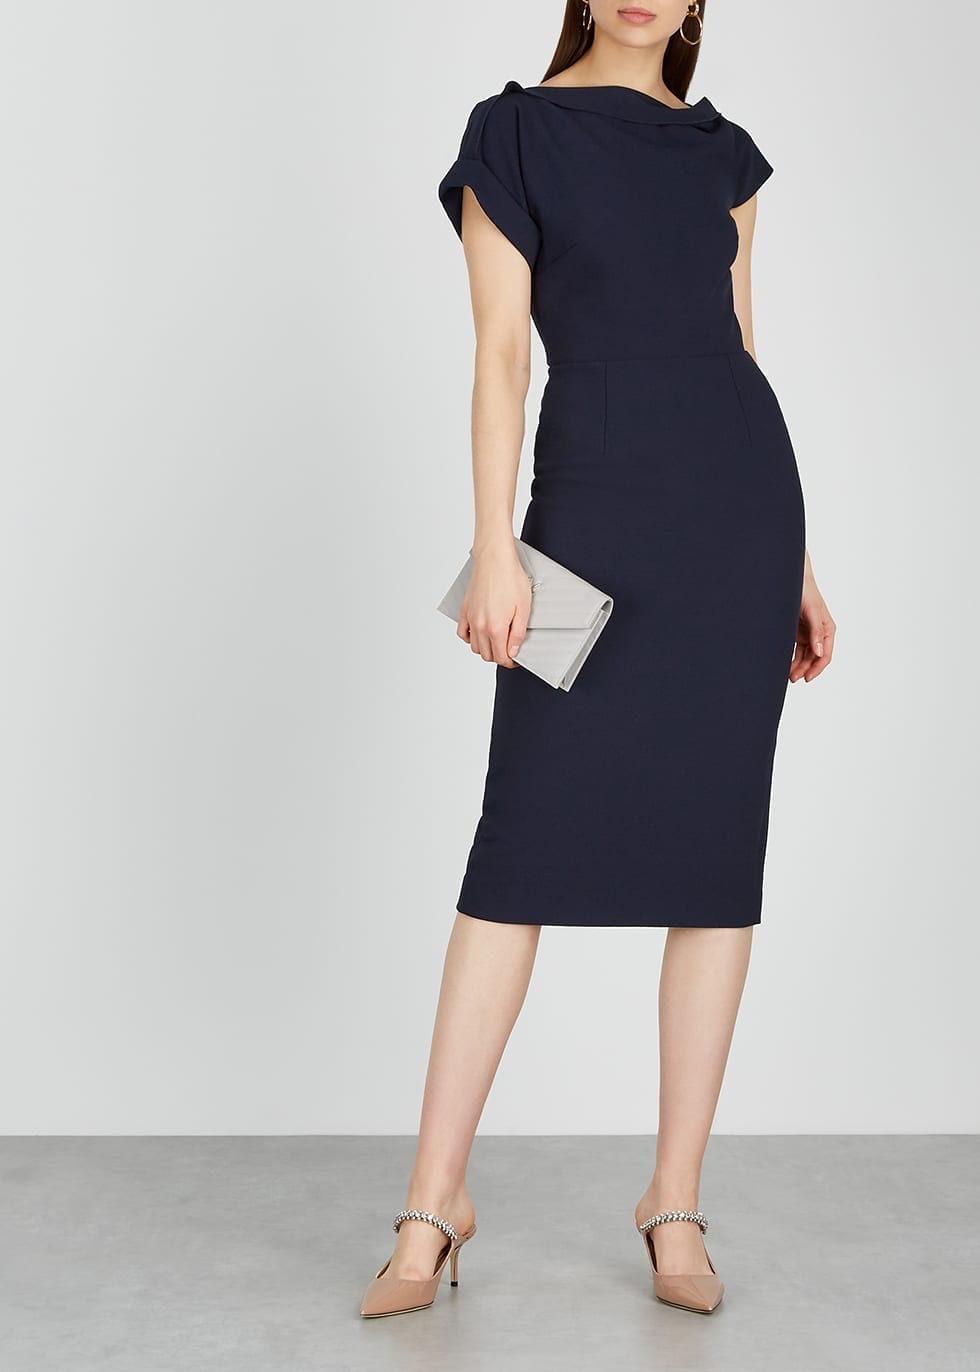 ROLAND MOURET Brenin Navy Stretch-cady Midi Dress